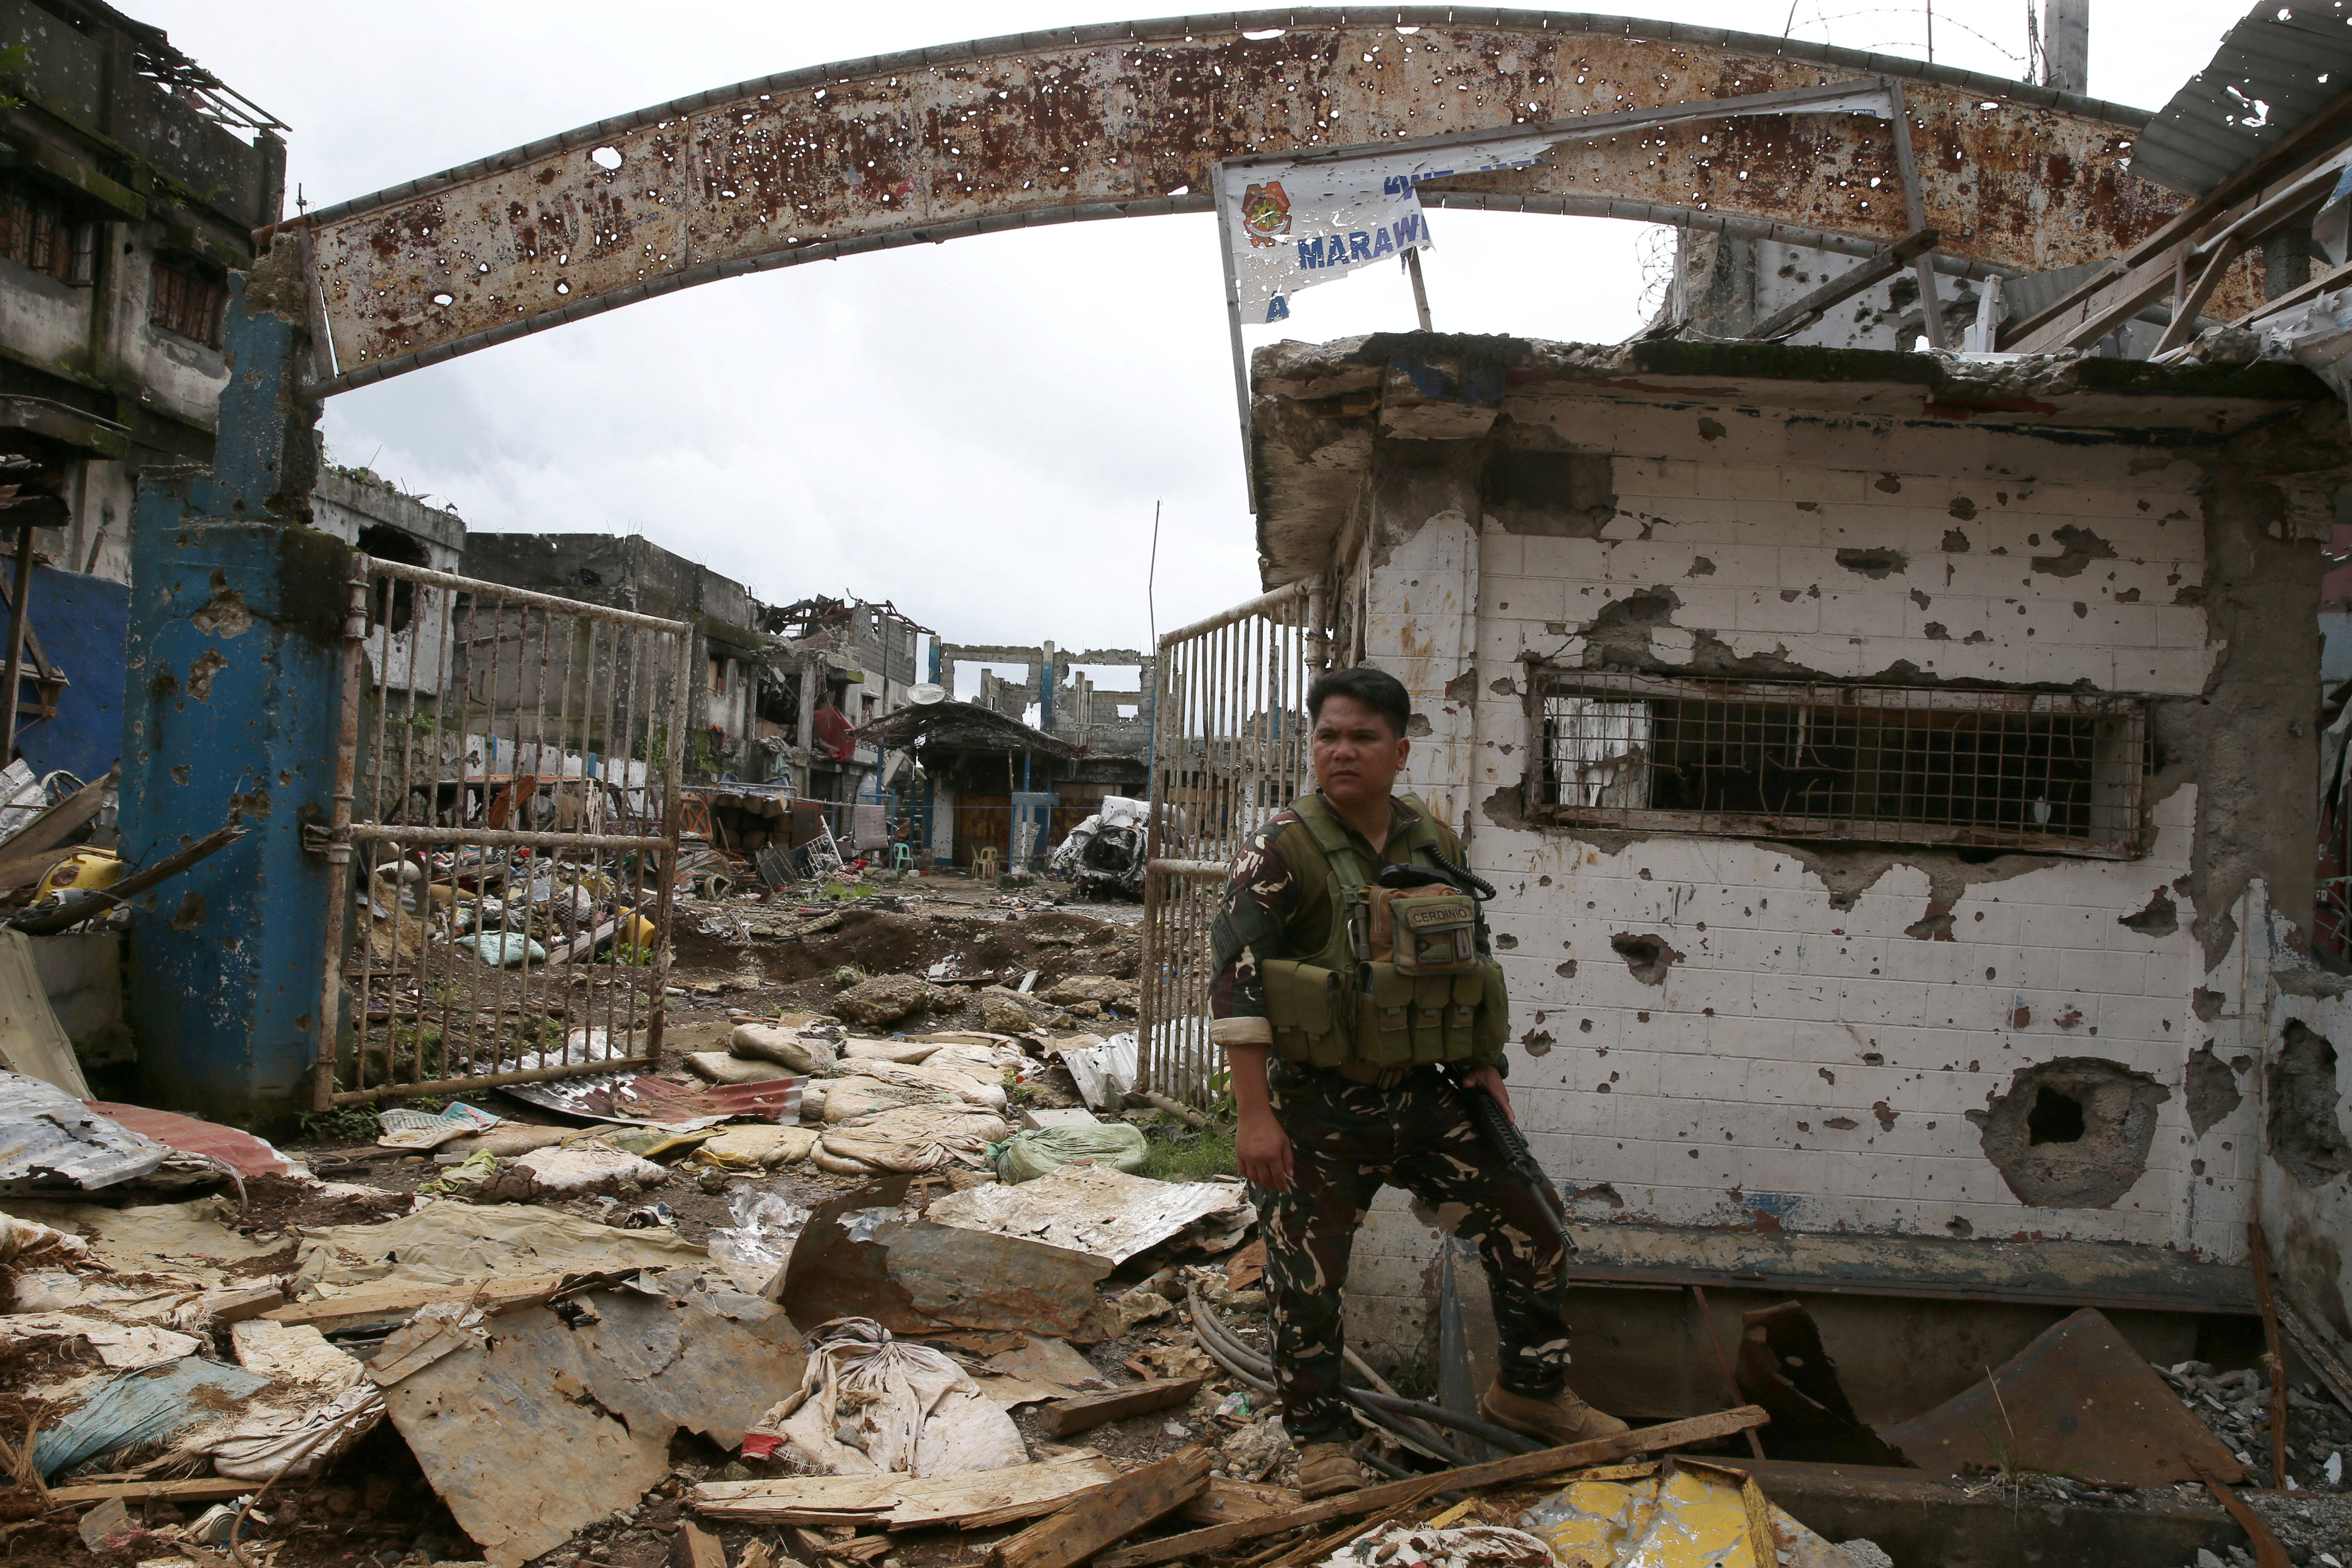 A government soldier stands guard in front of damaged buildings in Marawi city, Philippines October 25, 2017.